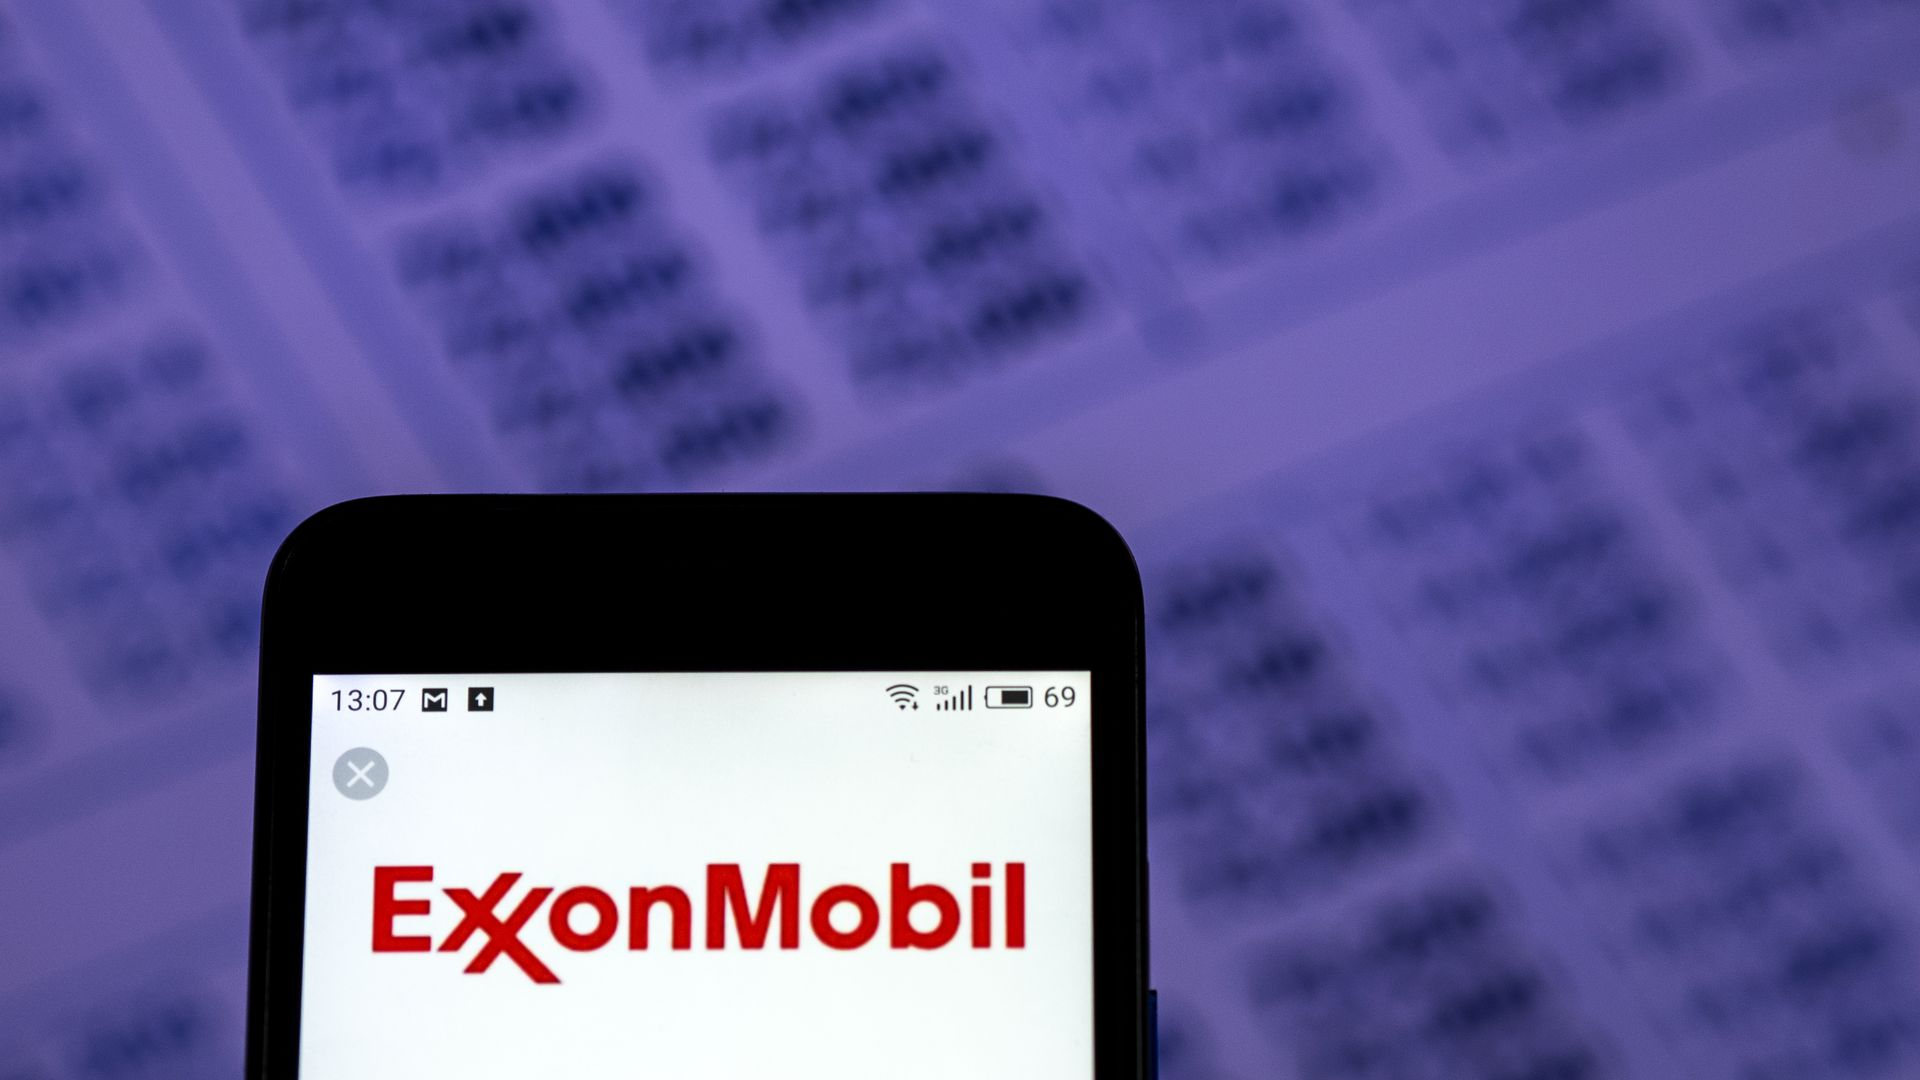 In this image, a phone displaying the ExxonMobil logo is displayed in front of a purple background with numbers.